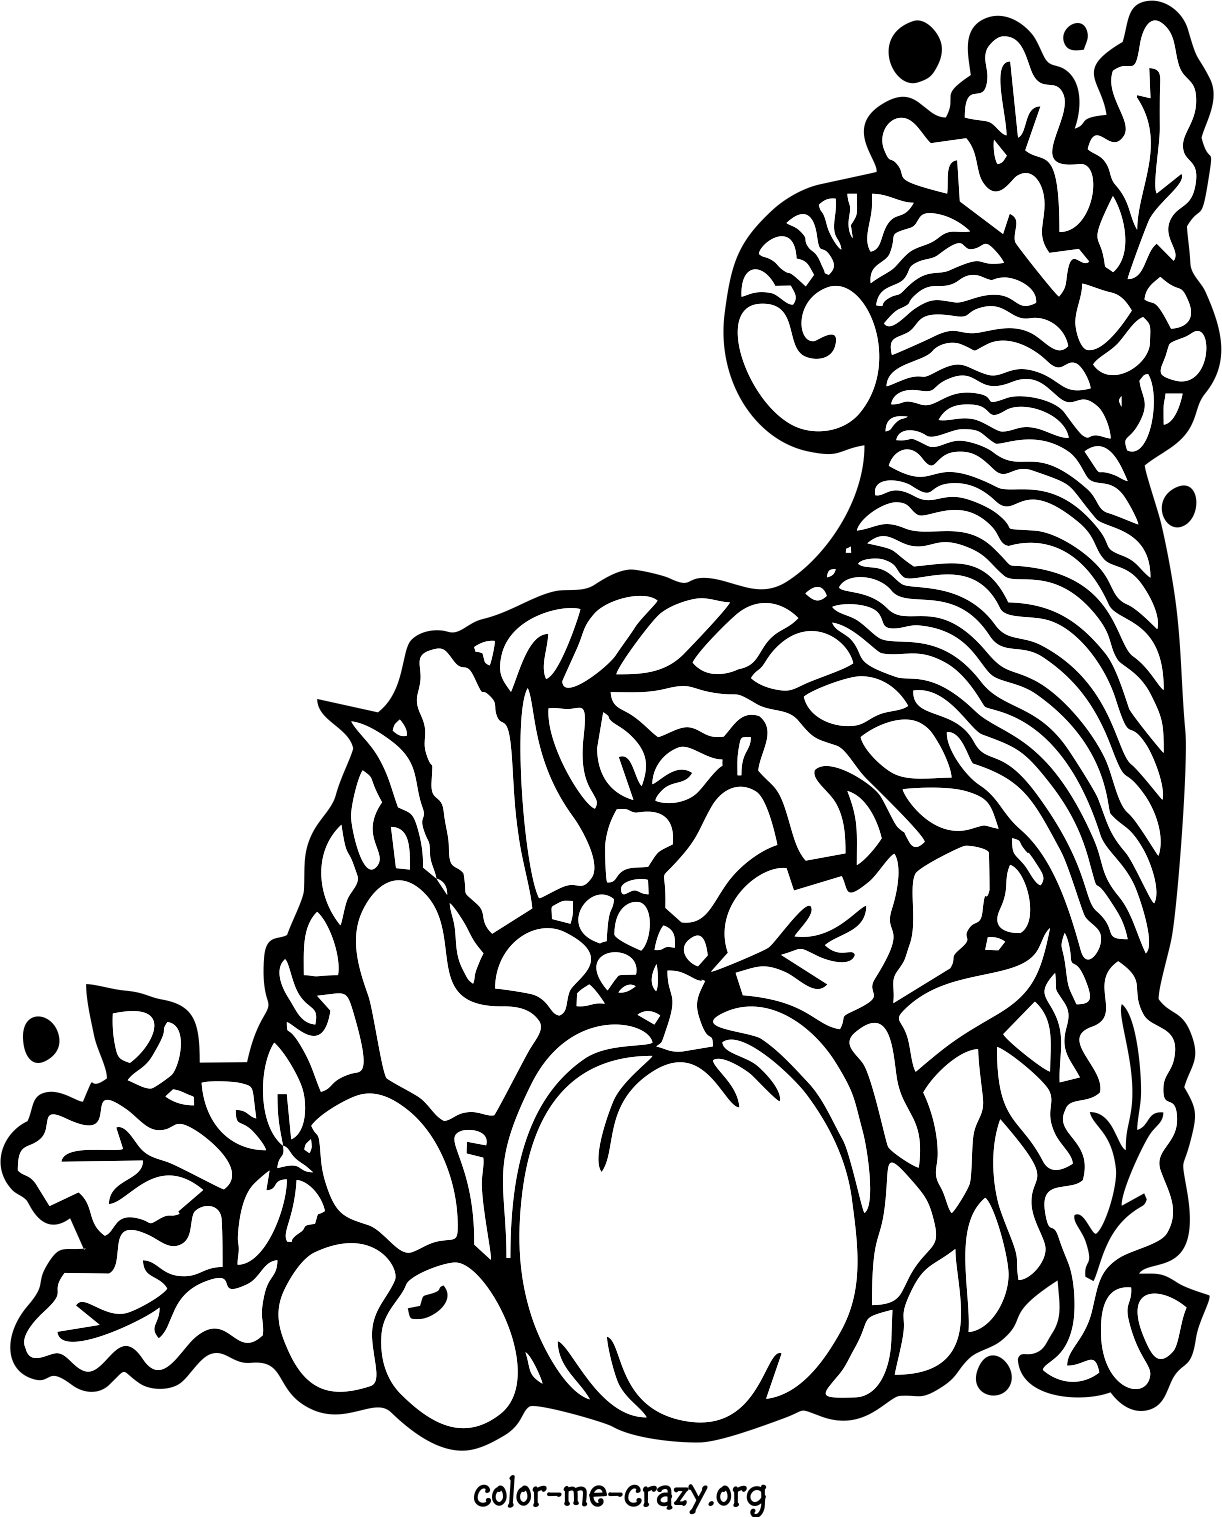 ColorMeCrazy.org: Thanksgiving Coloring Pages